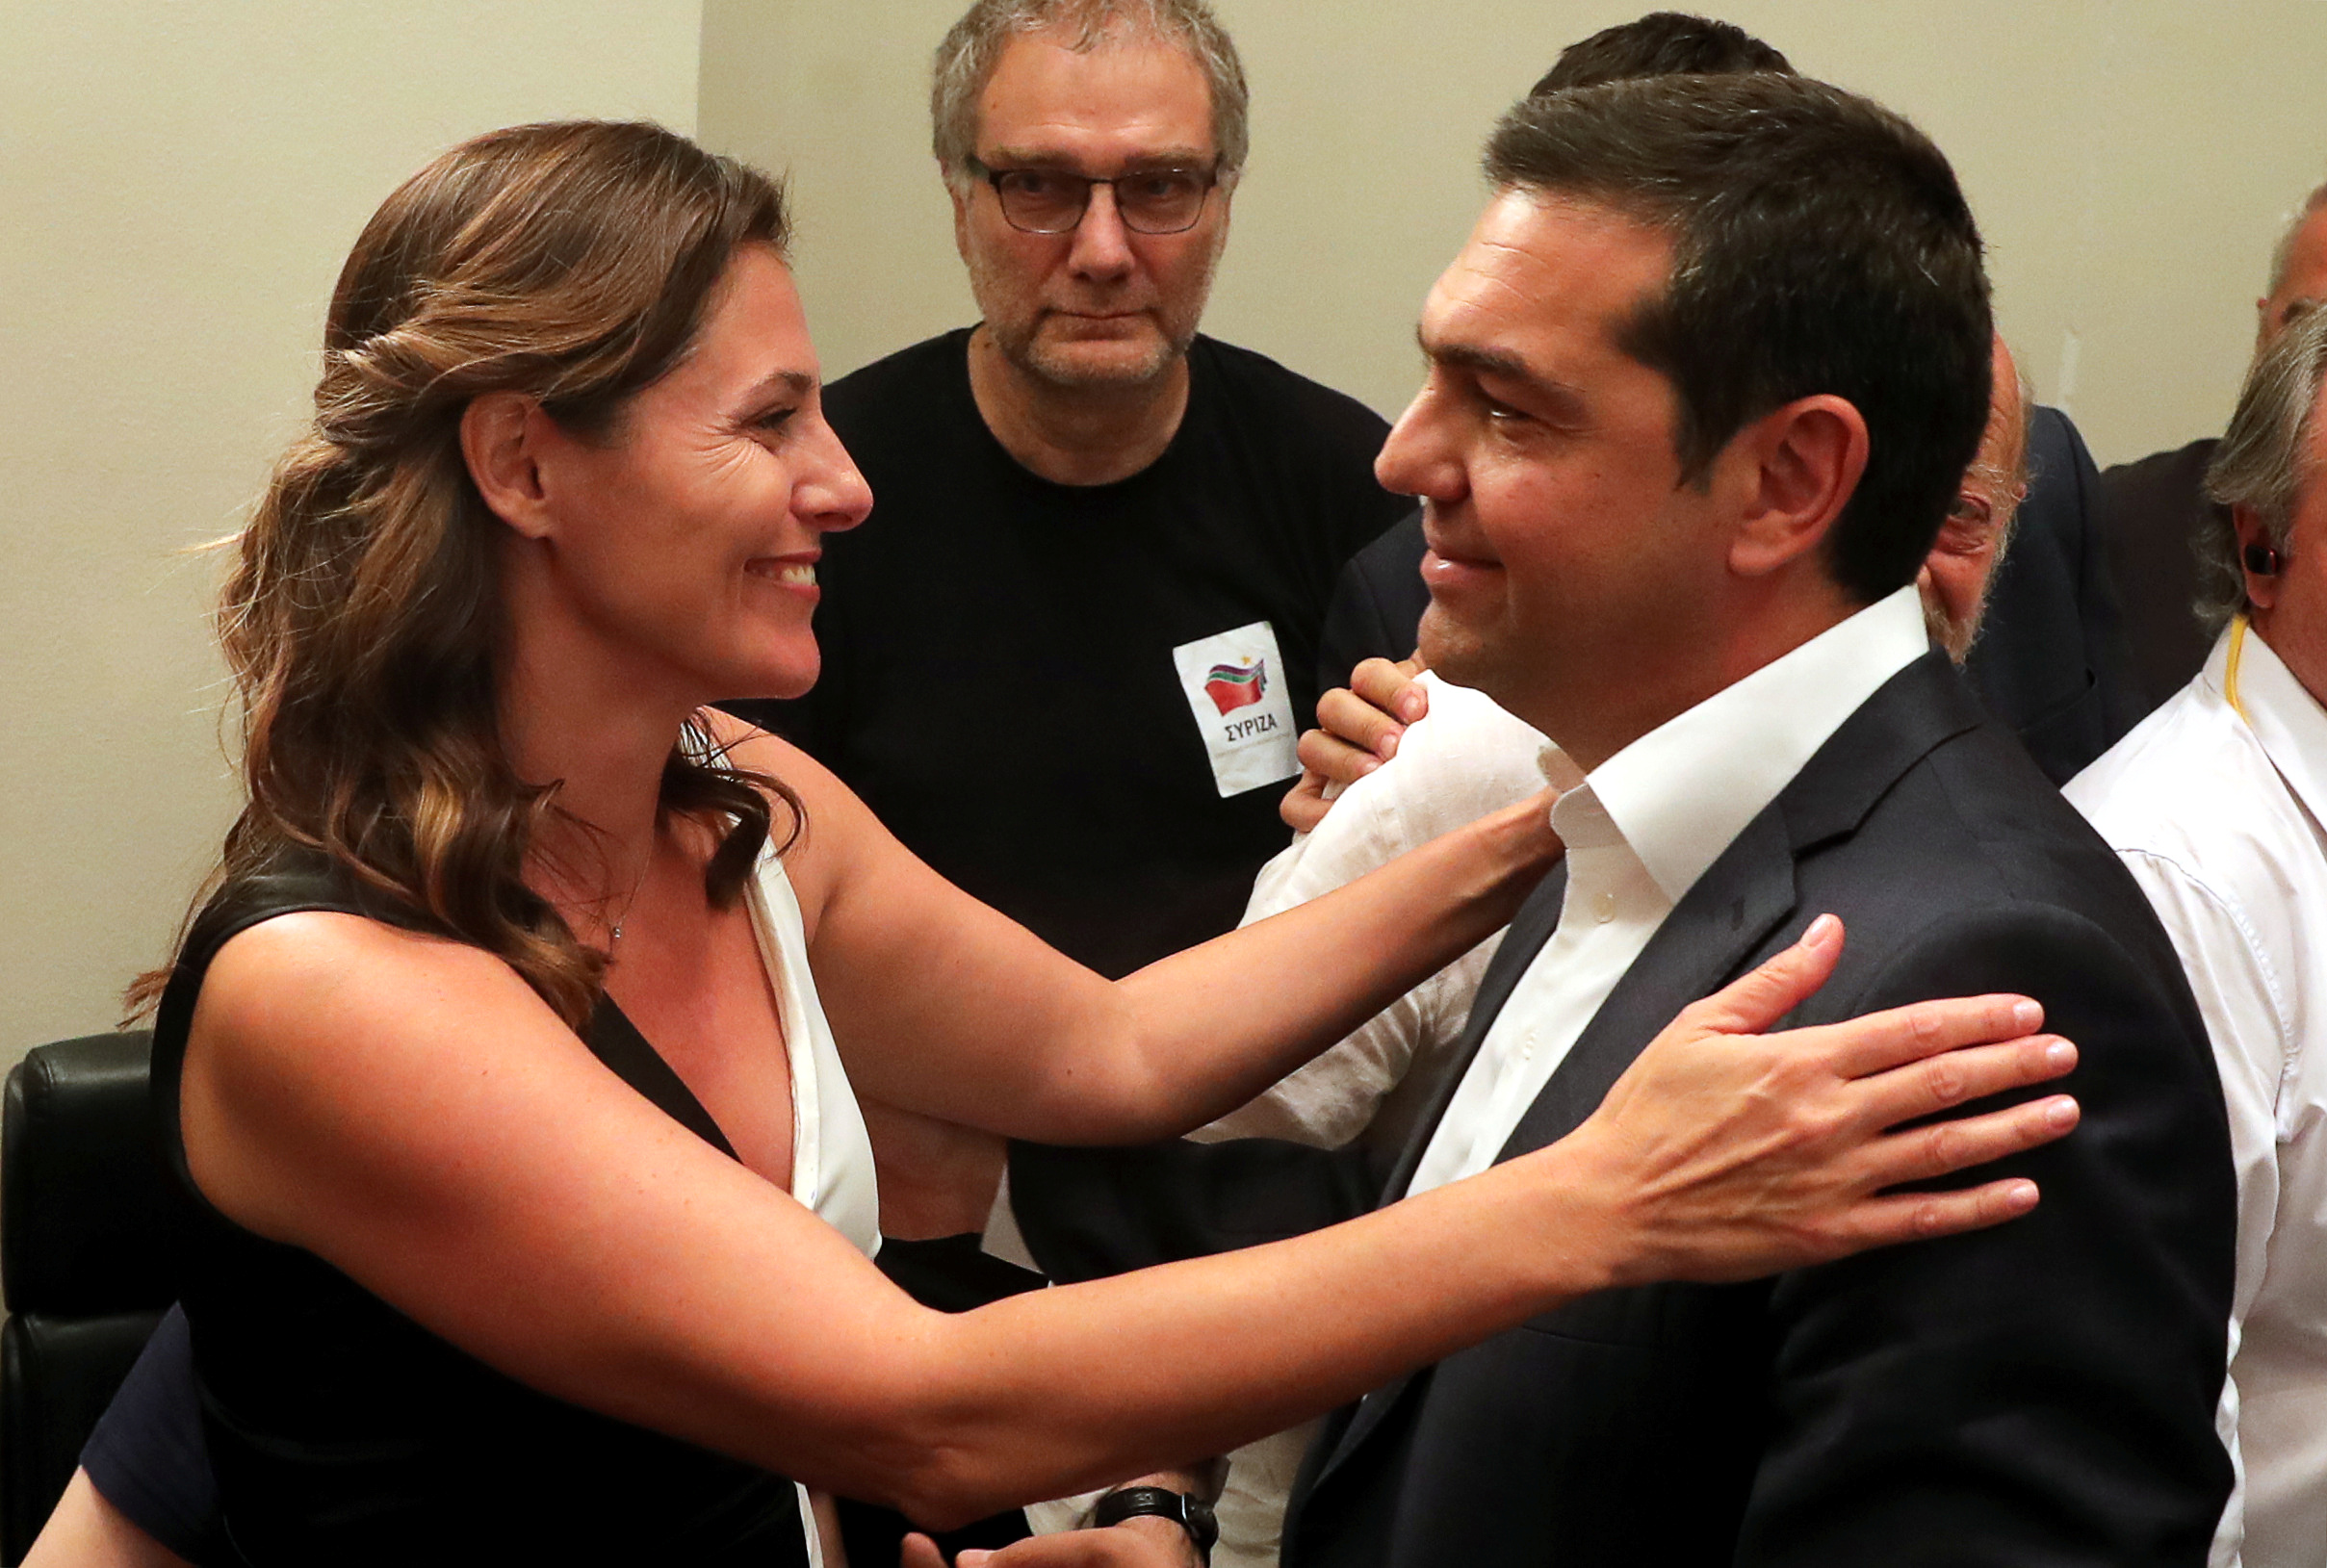 Greek Conservatives Win Election, Left-Wing Prime Minister Tsipras Concedes Defeat